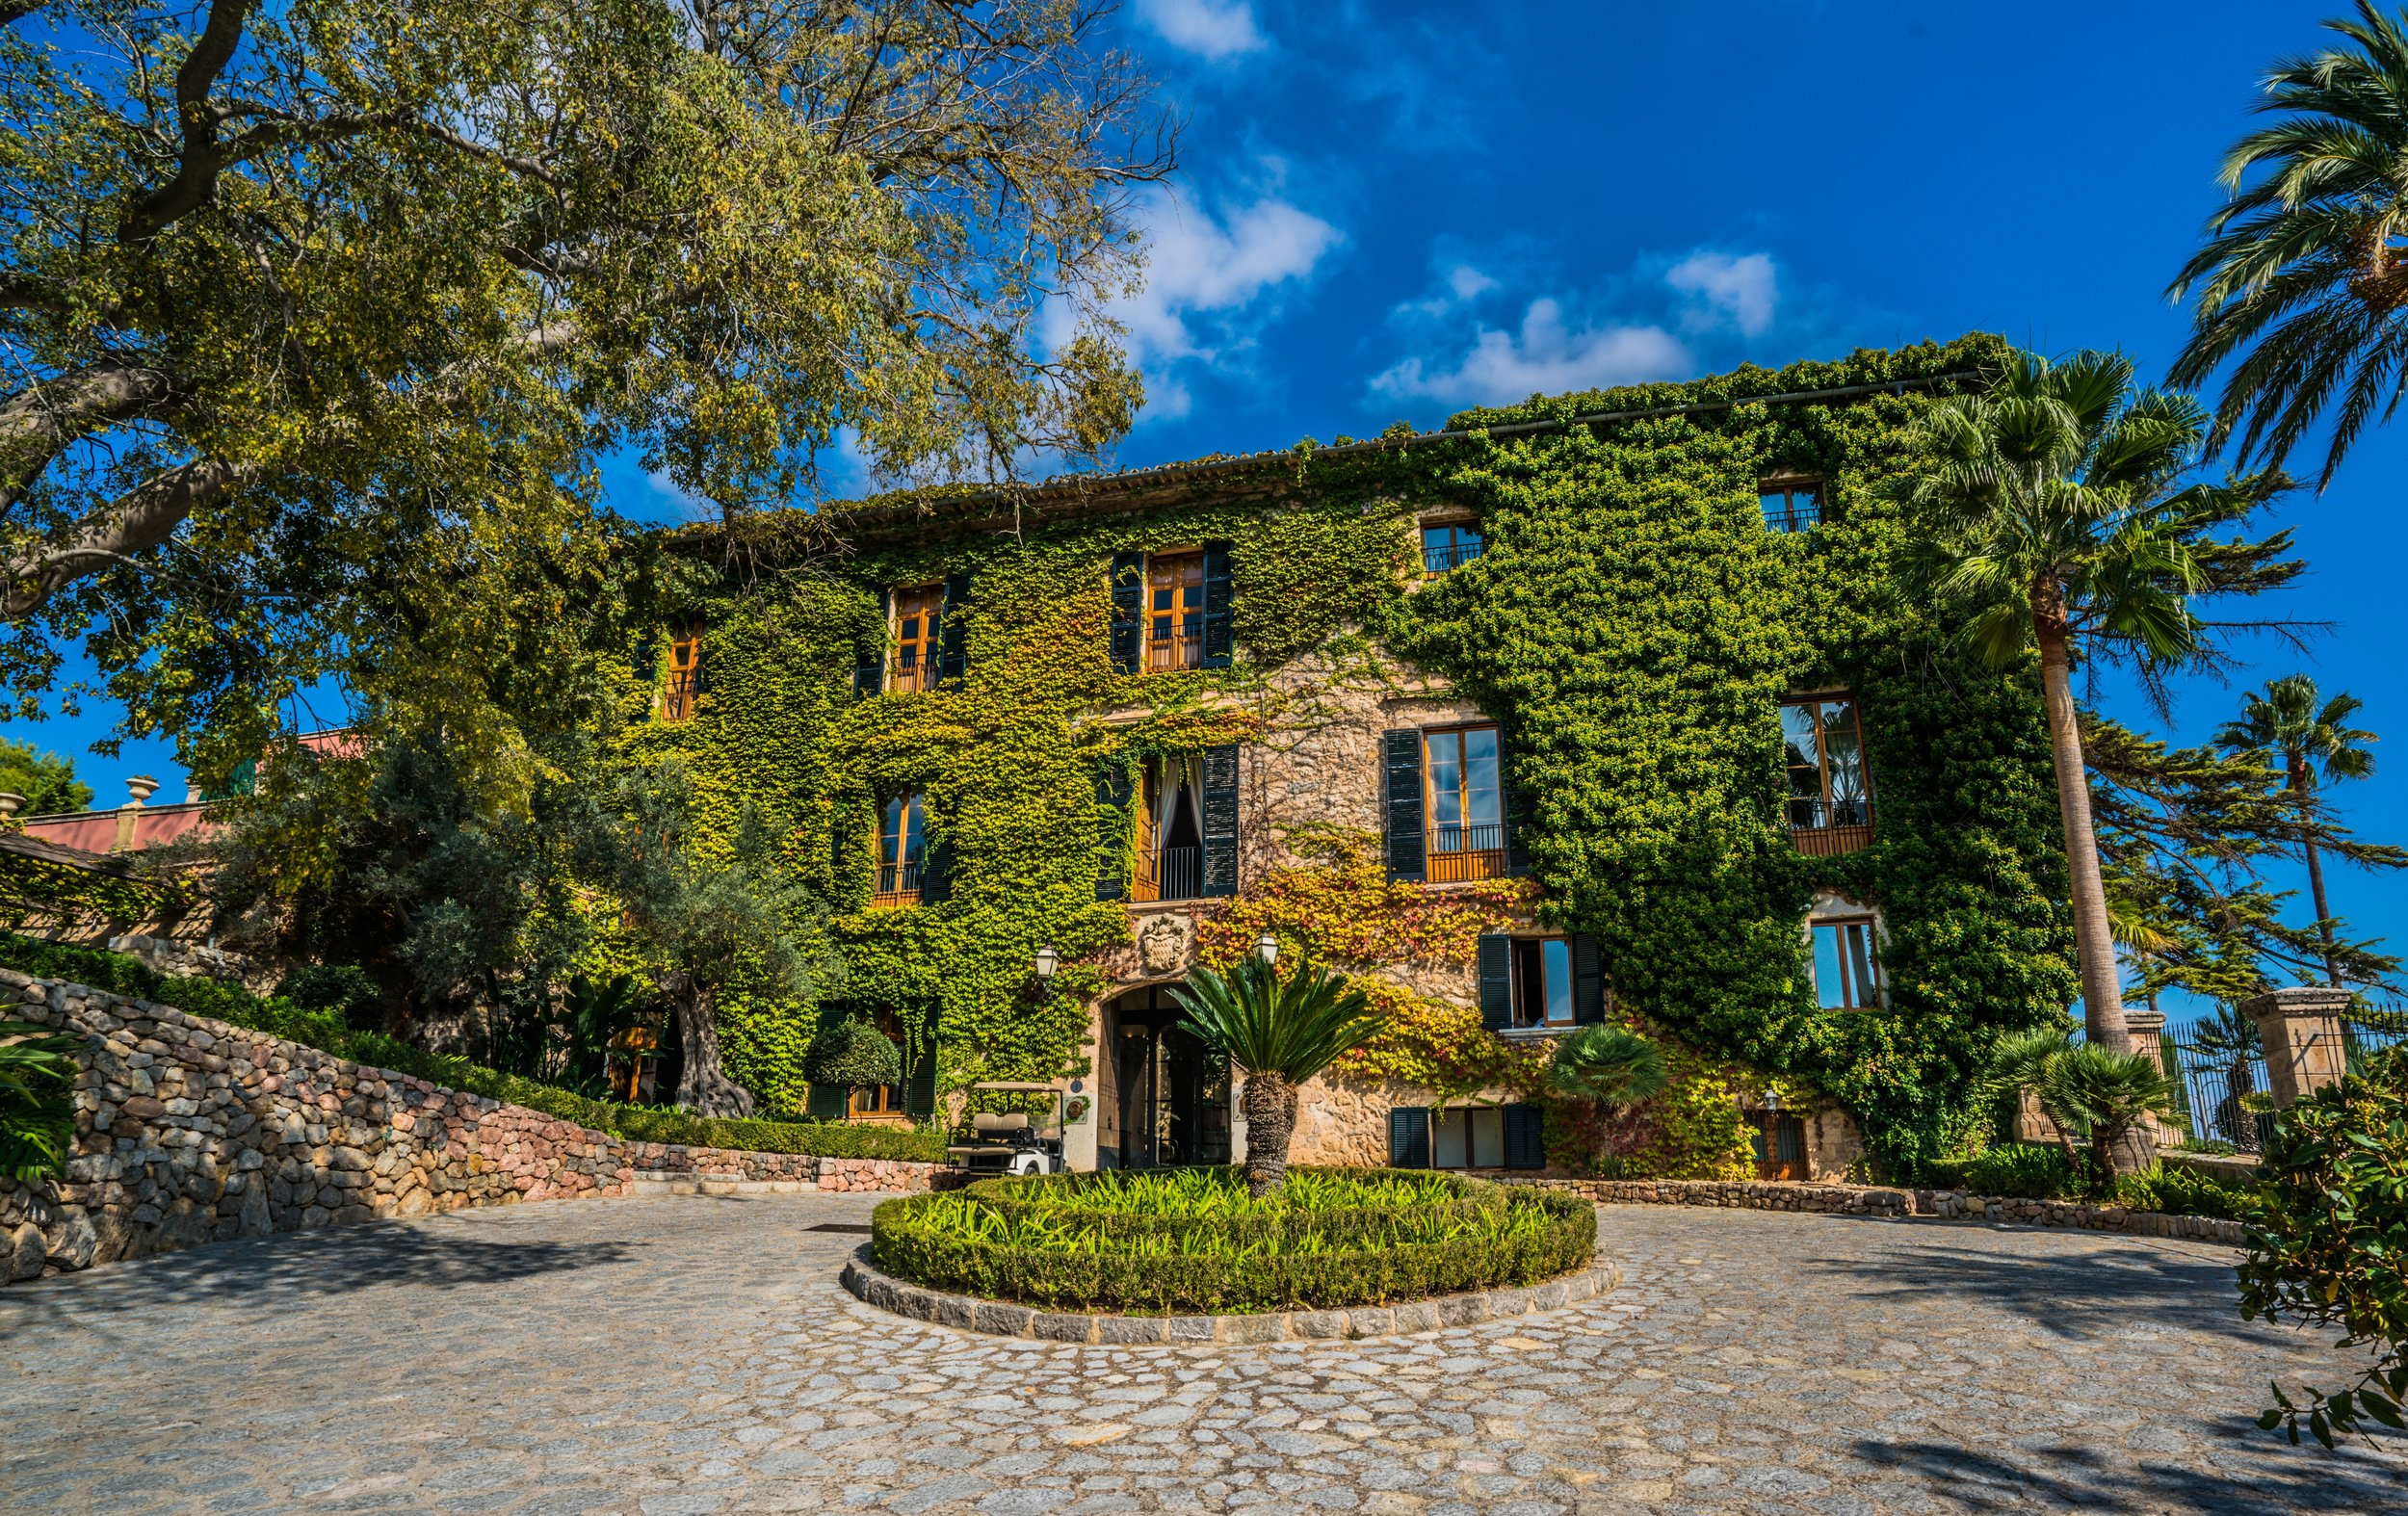 17th century luxurious estate in the Tramontana mountains  DBPhotogrraphy